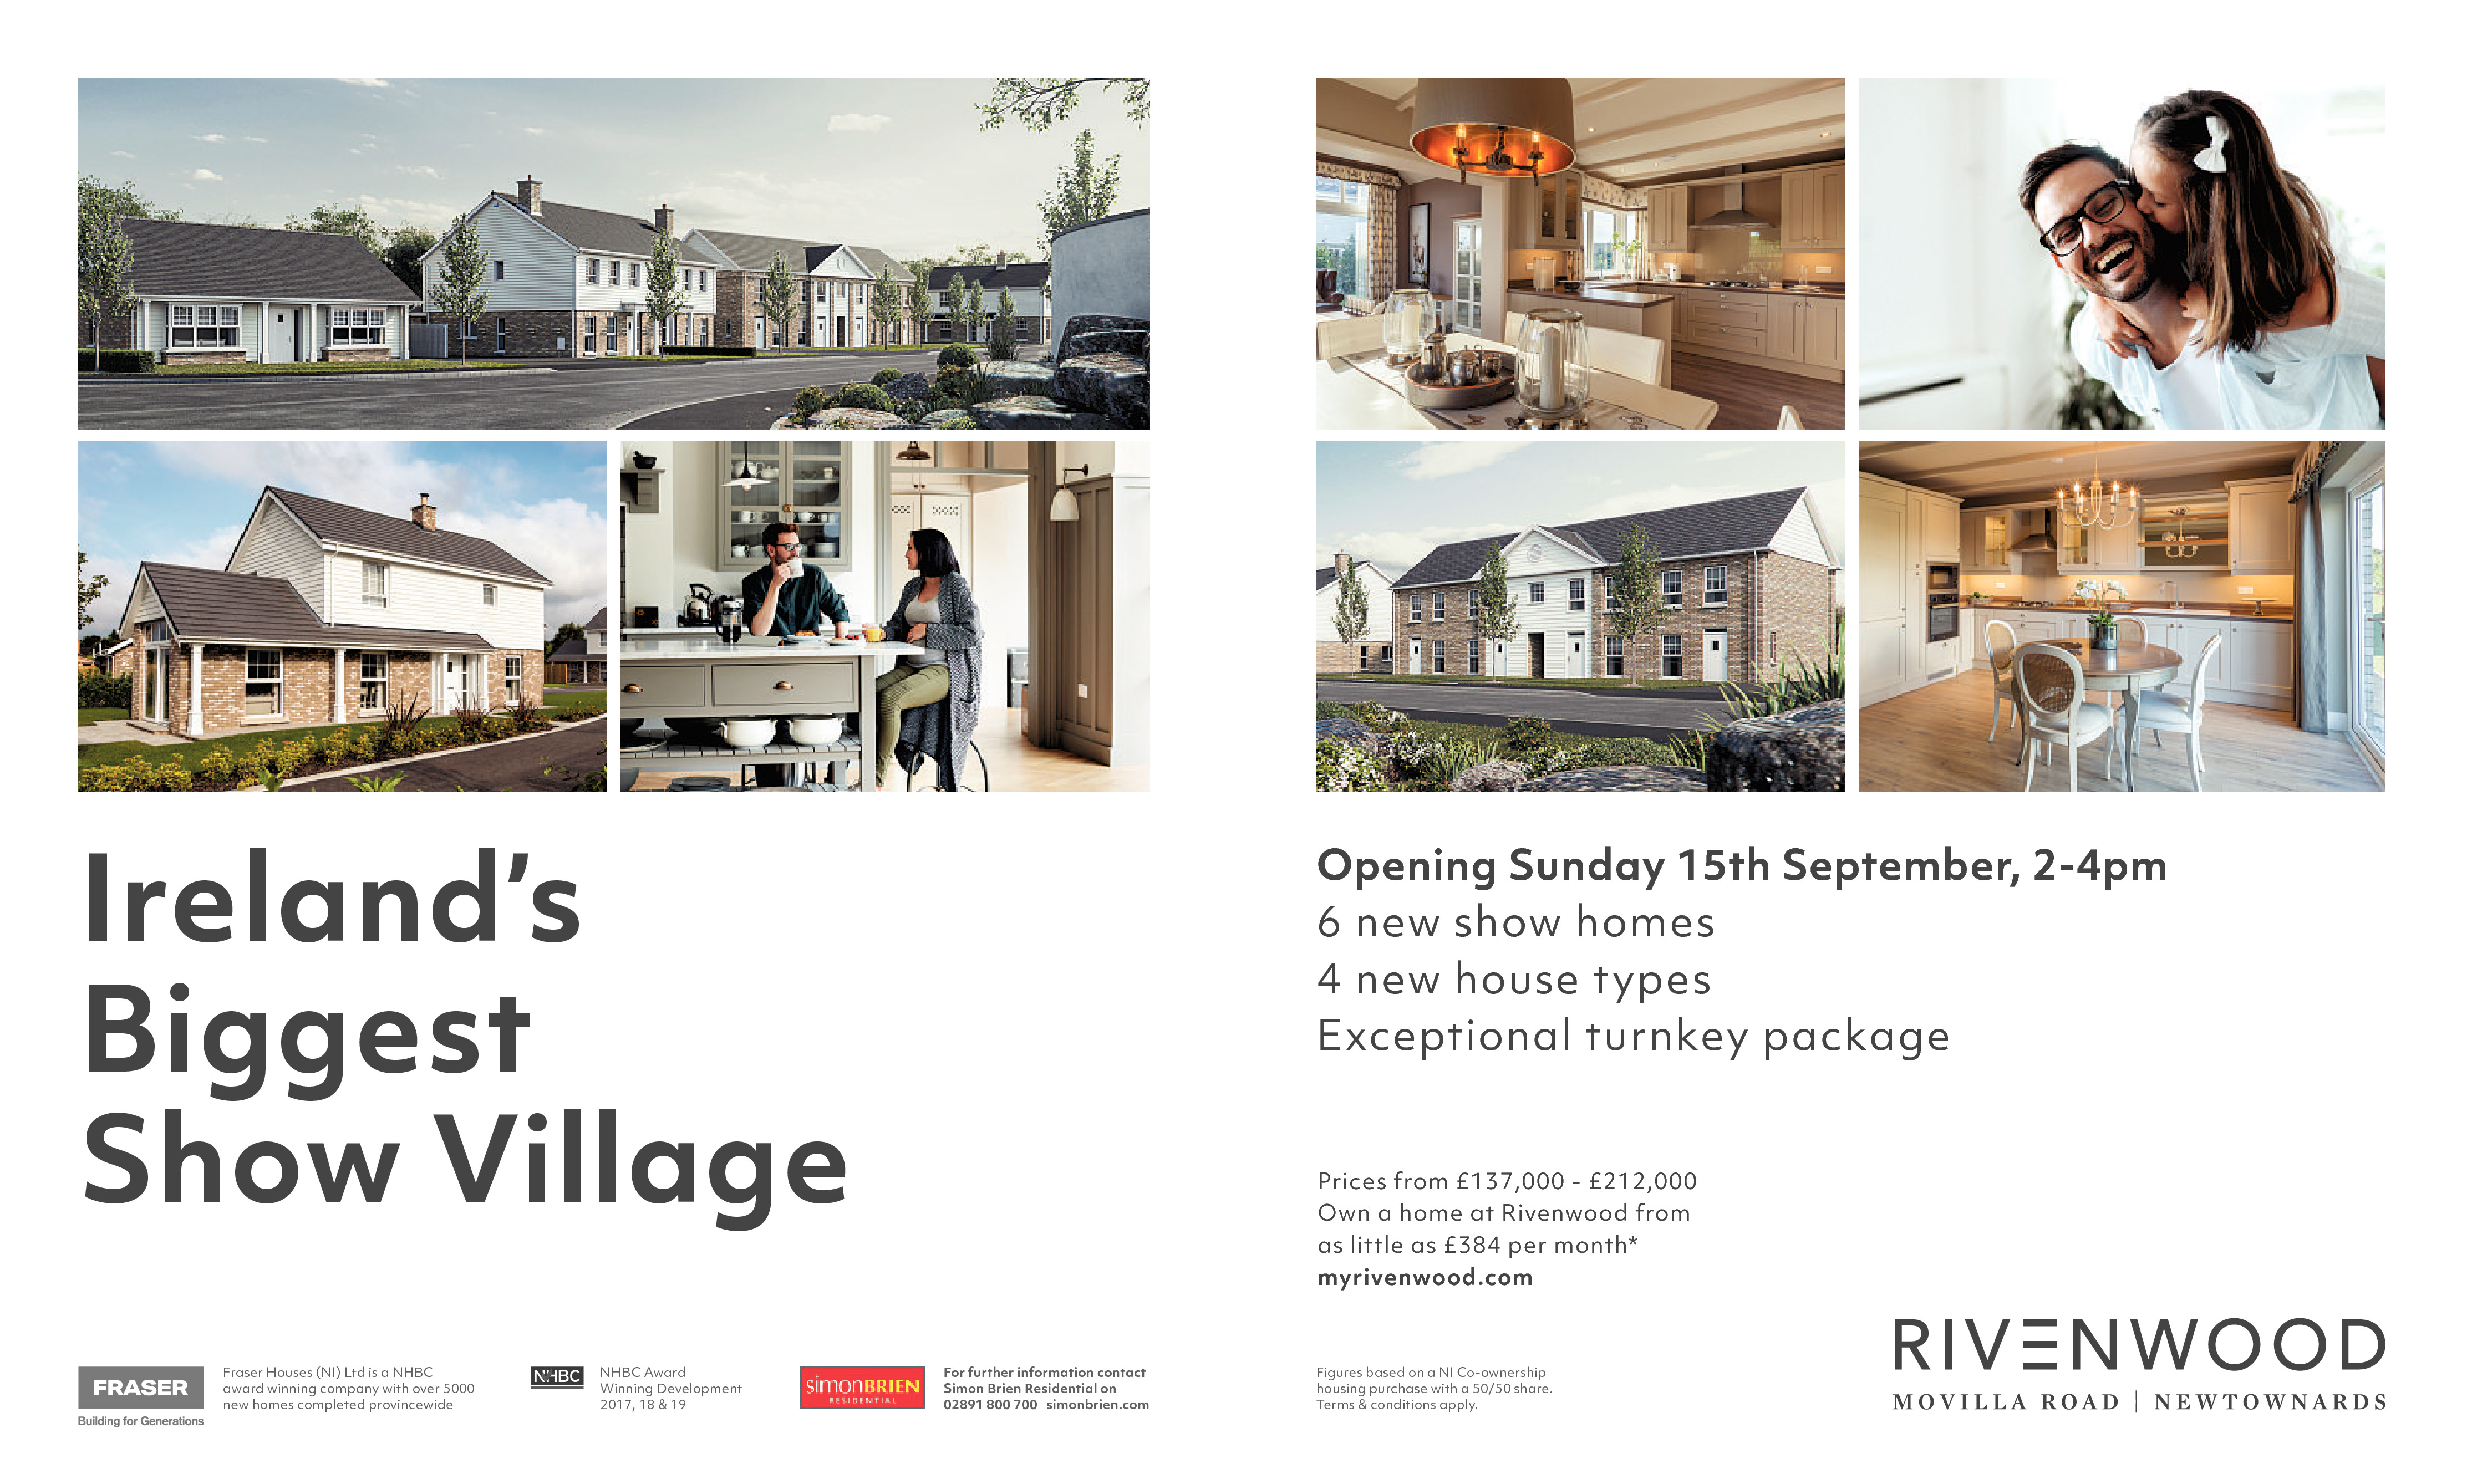 RIVENWOOD - Opening Sunday 15th September - Properties For Sale in Northern Ireland